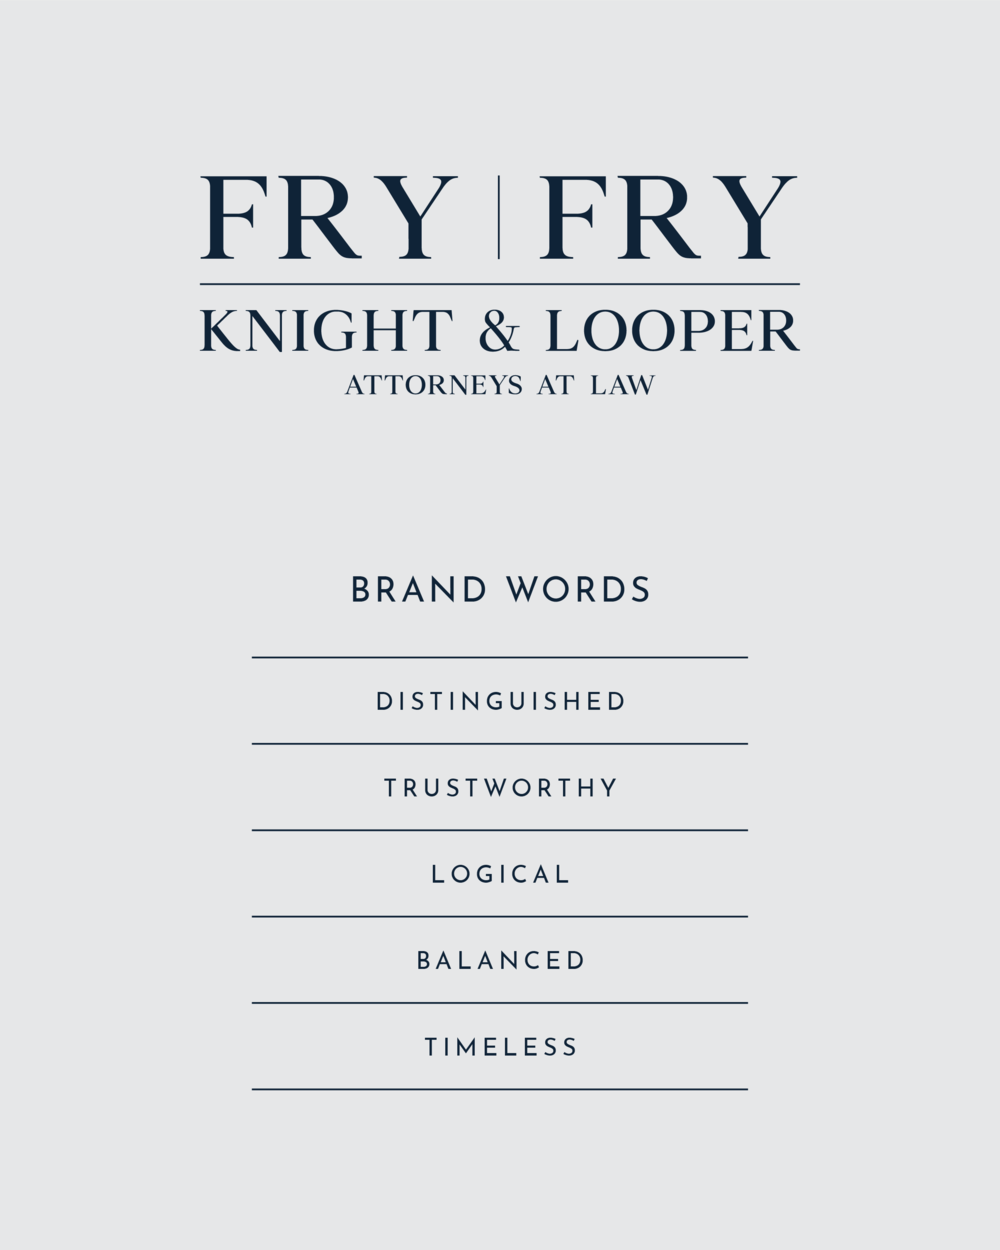 LAWFRY_Portfolio_BrandWords.png